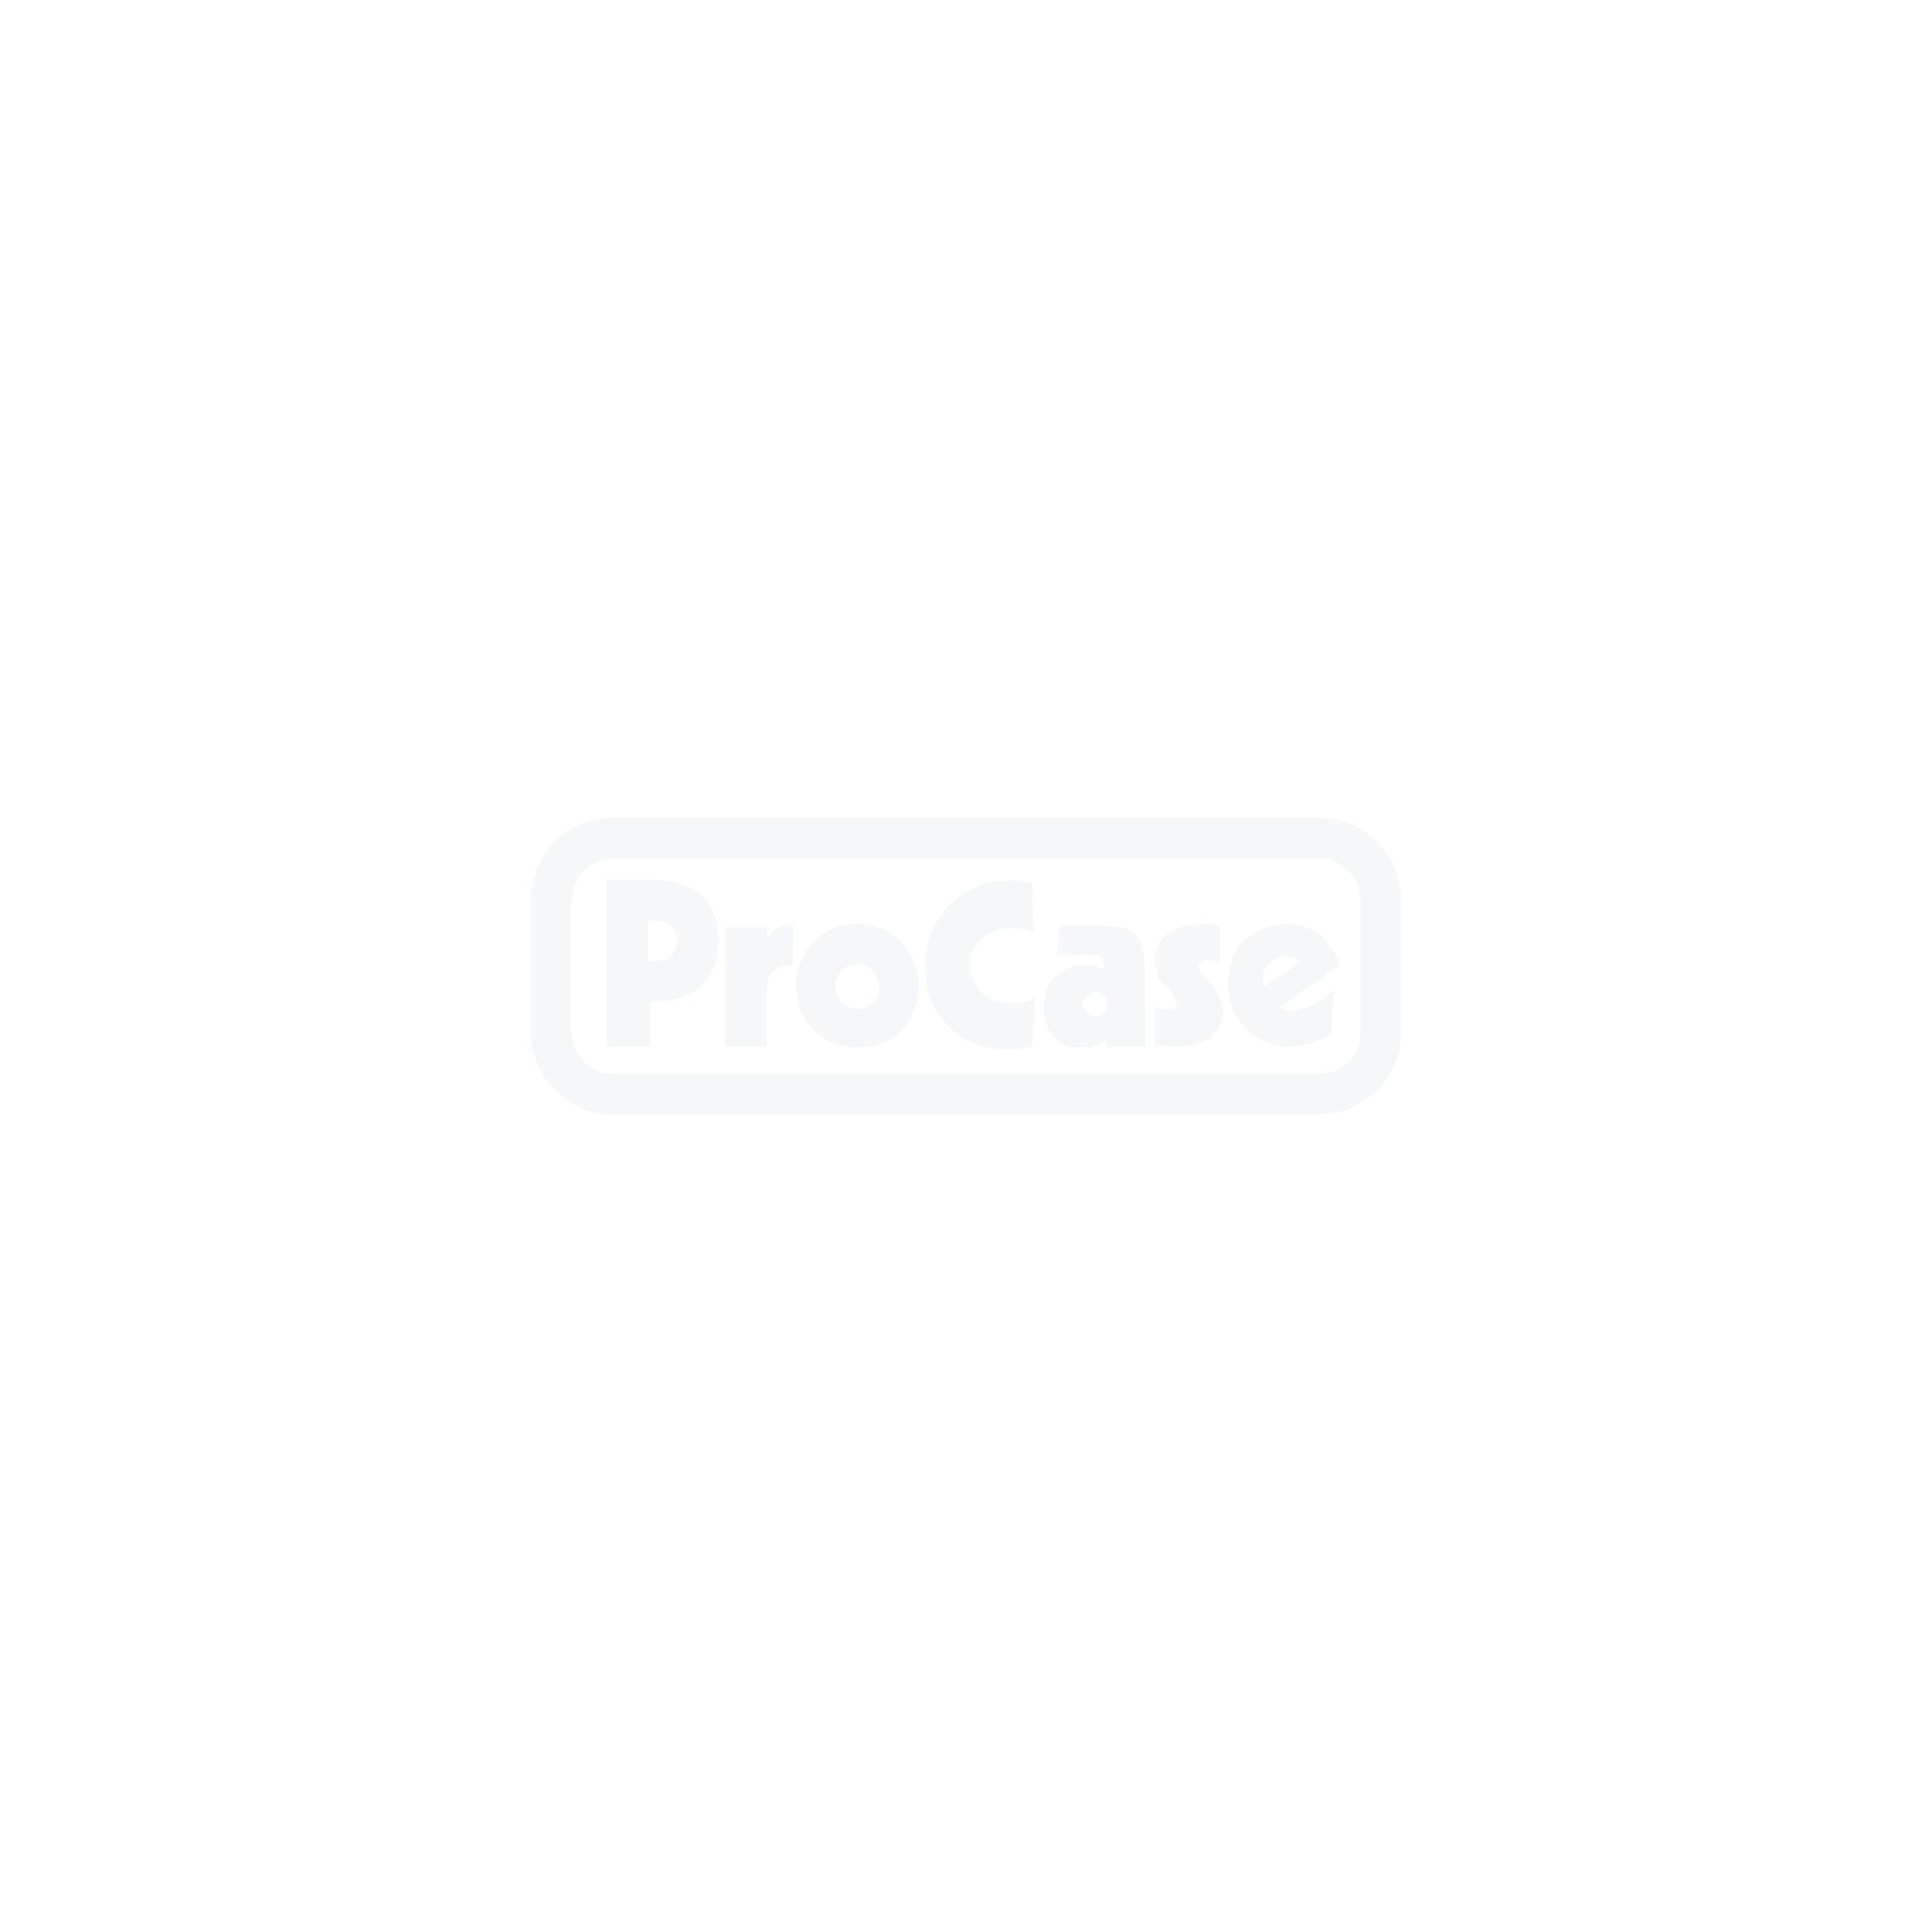 Flightcase für Movecat D8 Plus-C-250-4 250kg 2